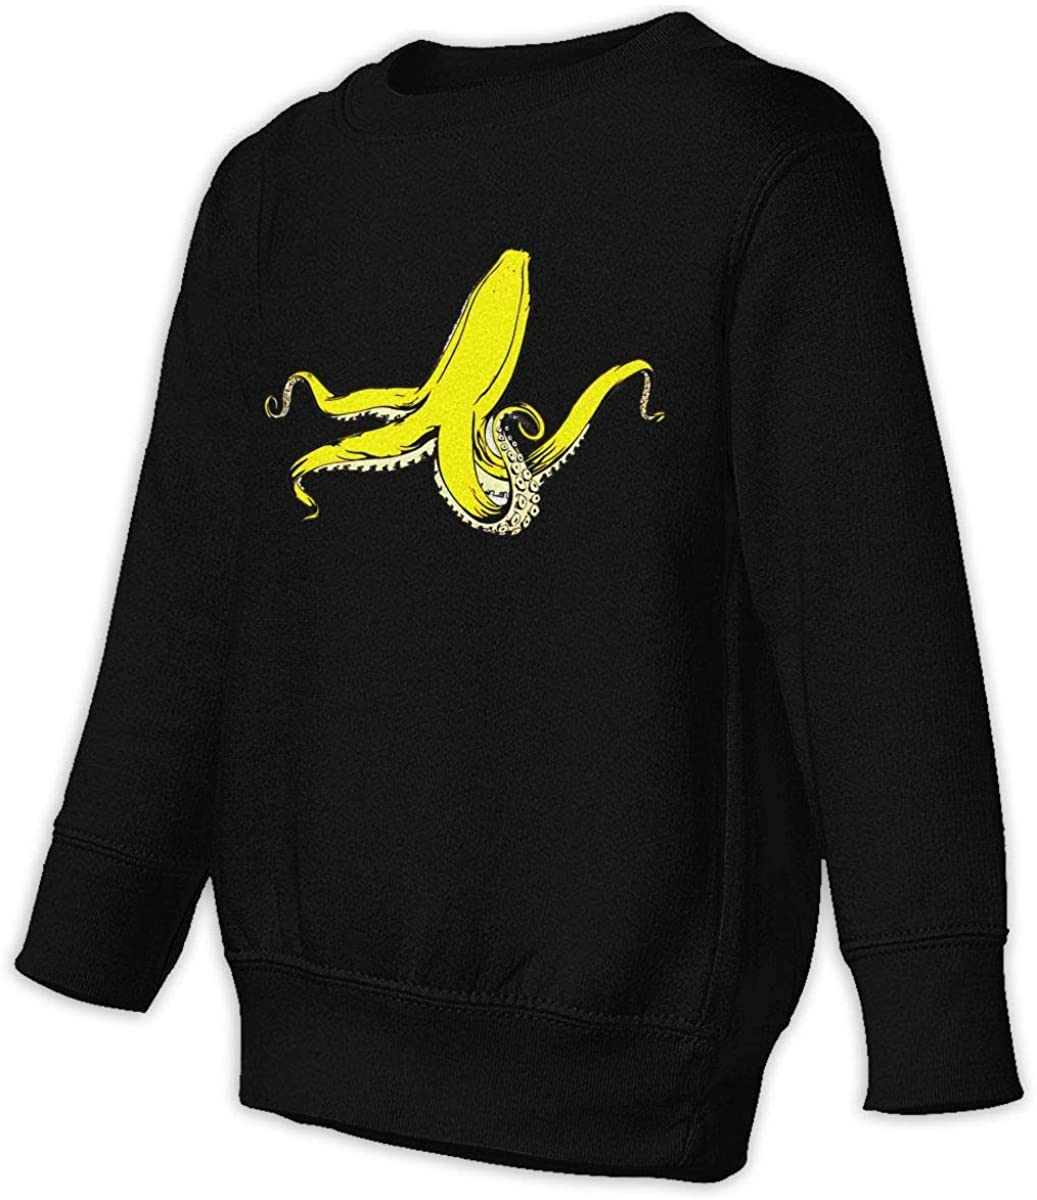 wudici Banana Squid Boys Girls Pullover Sweaters Crewneck Sweatshirts Clothes for 2-6 Years Old Children